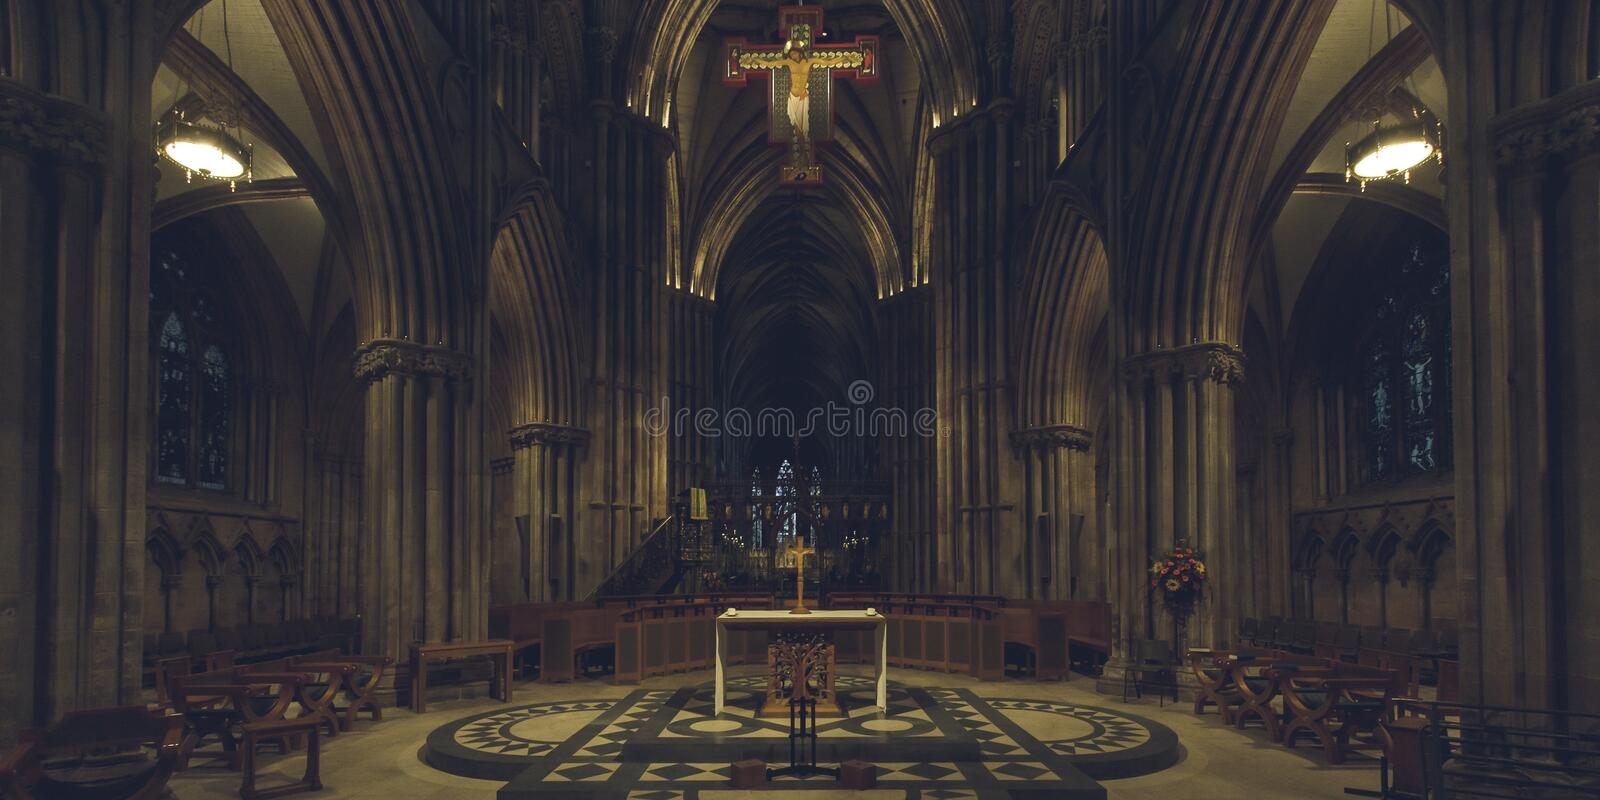 Interiors of Lichfield Cathedral - Nave and Altar. Lichfield, England - Oct 15, 2018: Interiors of Lichfield Cathedral - Nave and Altar stock images